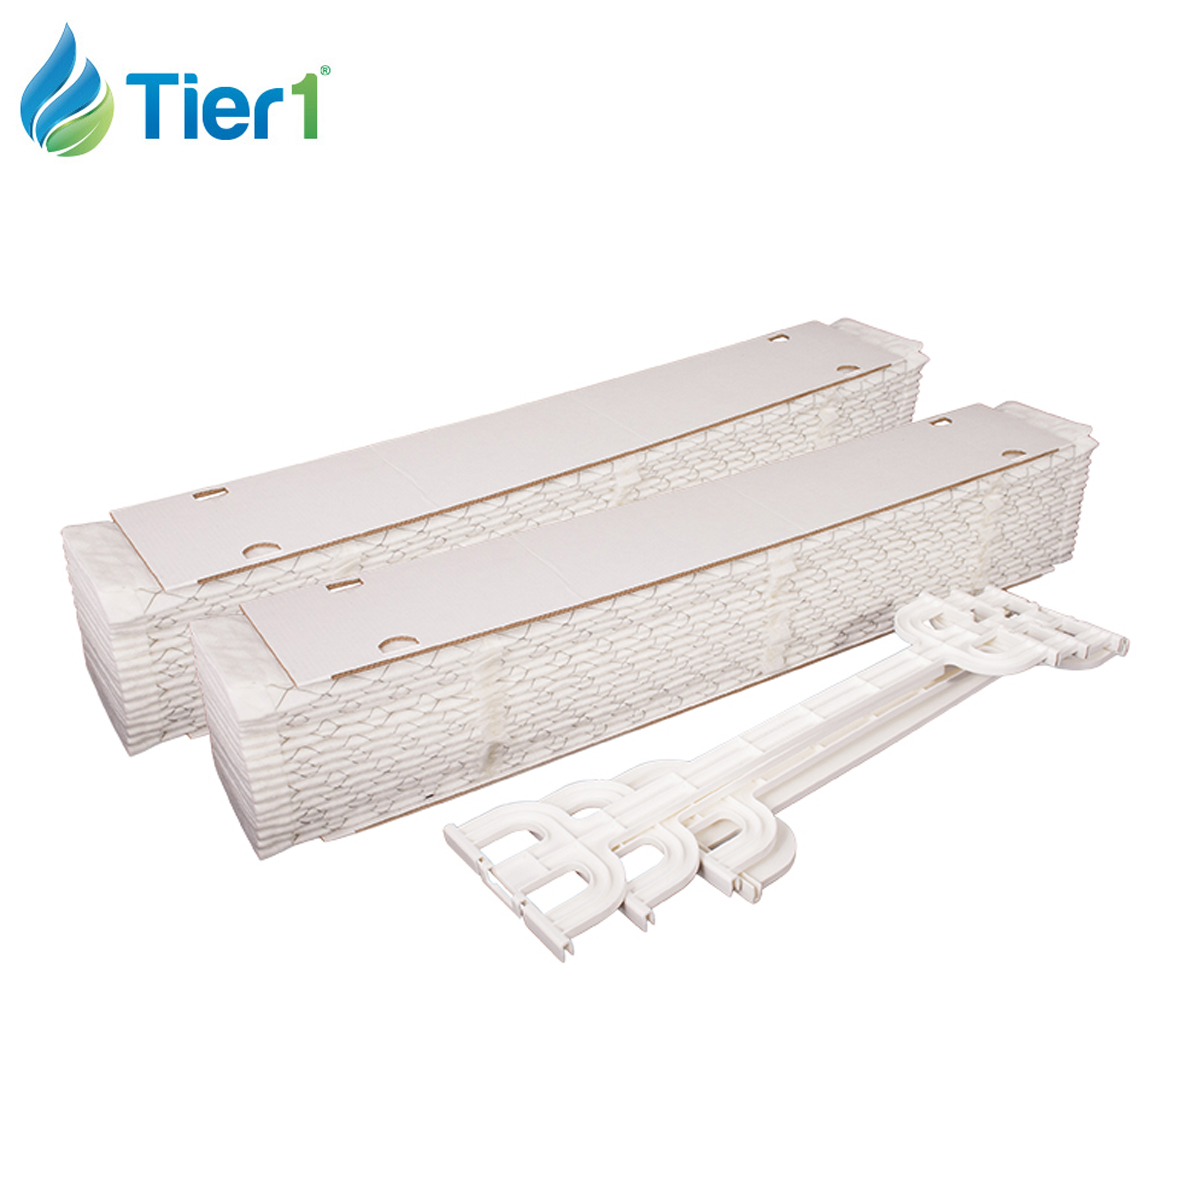 Aprilaire Air Purifier Replacement Filter 210 by Tier1 (2-Pack) TIER1-AF210-2PK